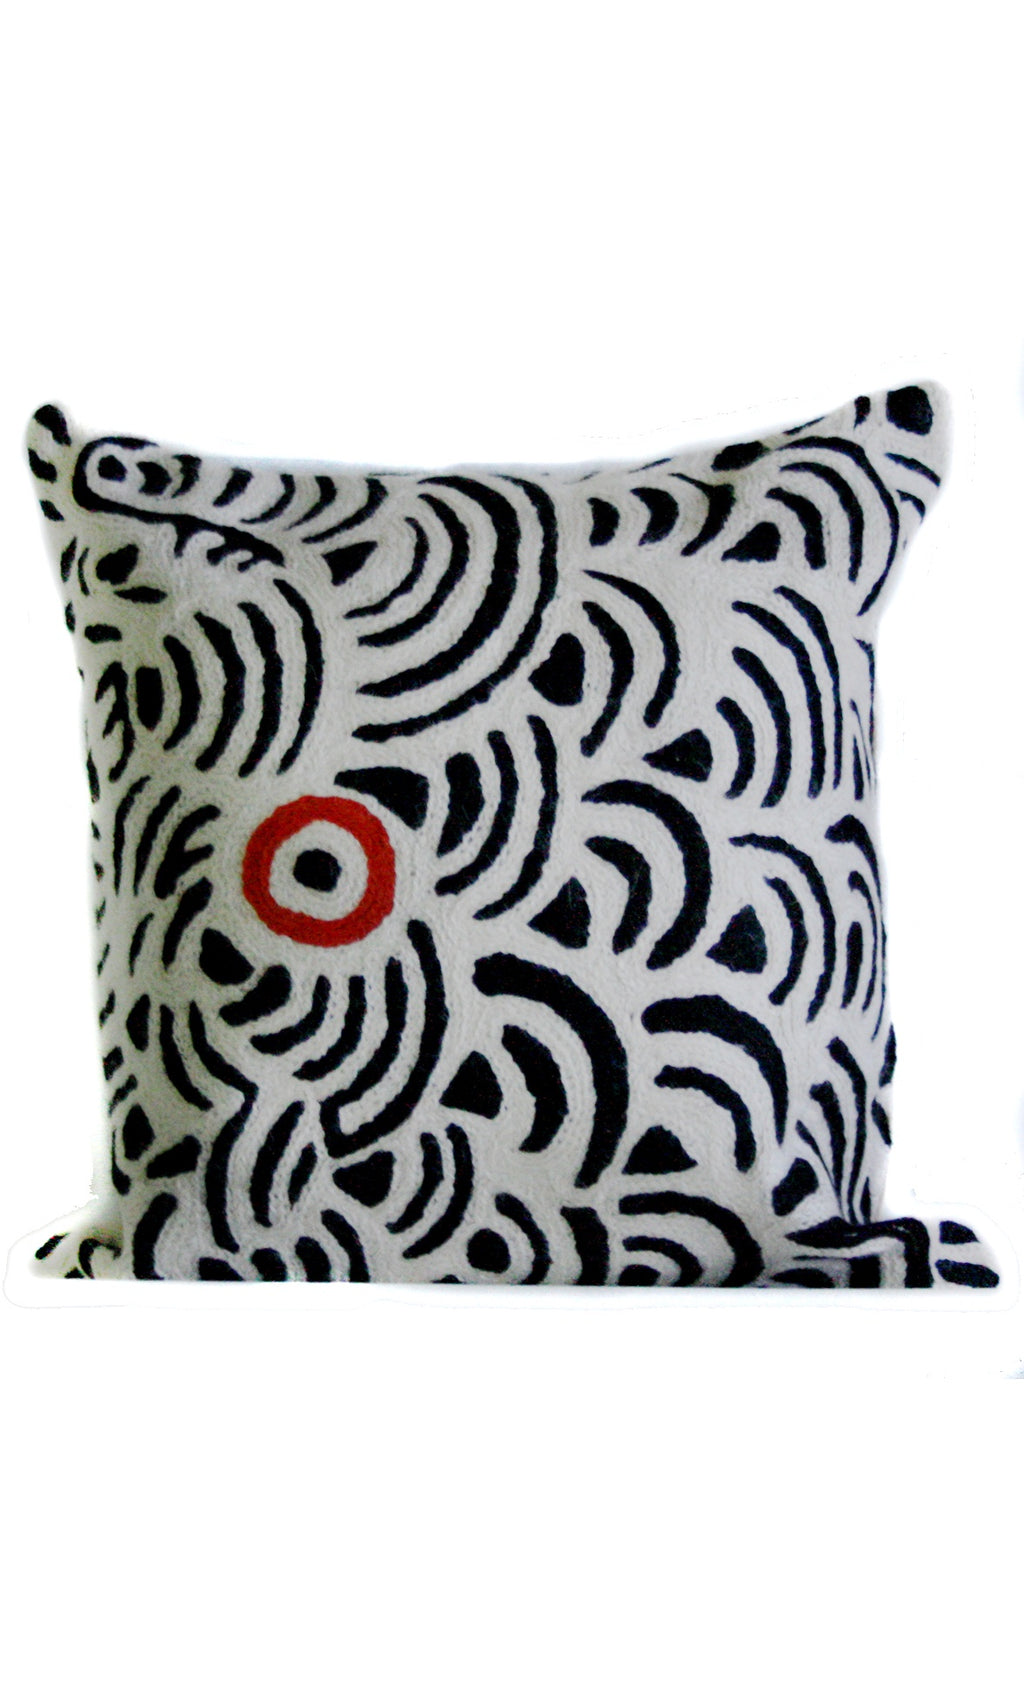 Aboriginal Art Cushion Cover by Nelly Patterson